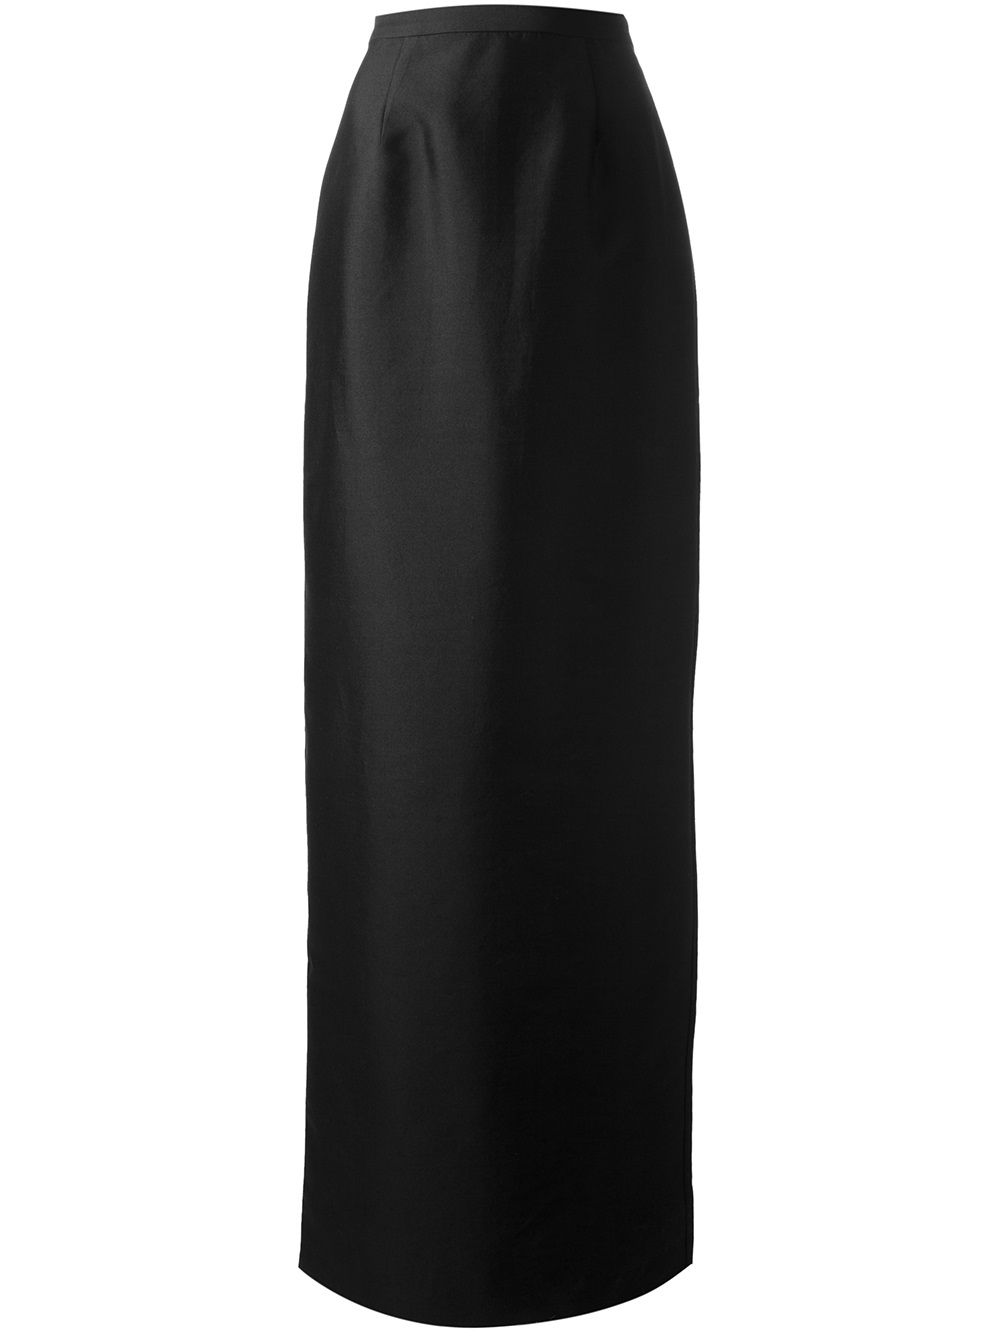 Shop for long pencil skirt on etsy the place to express your